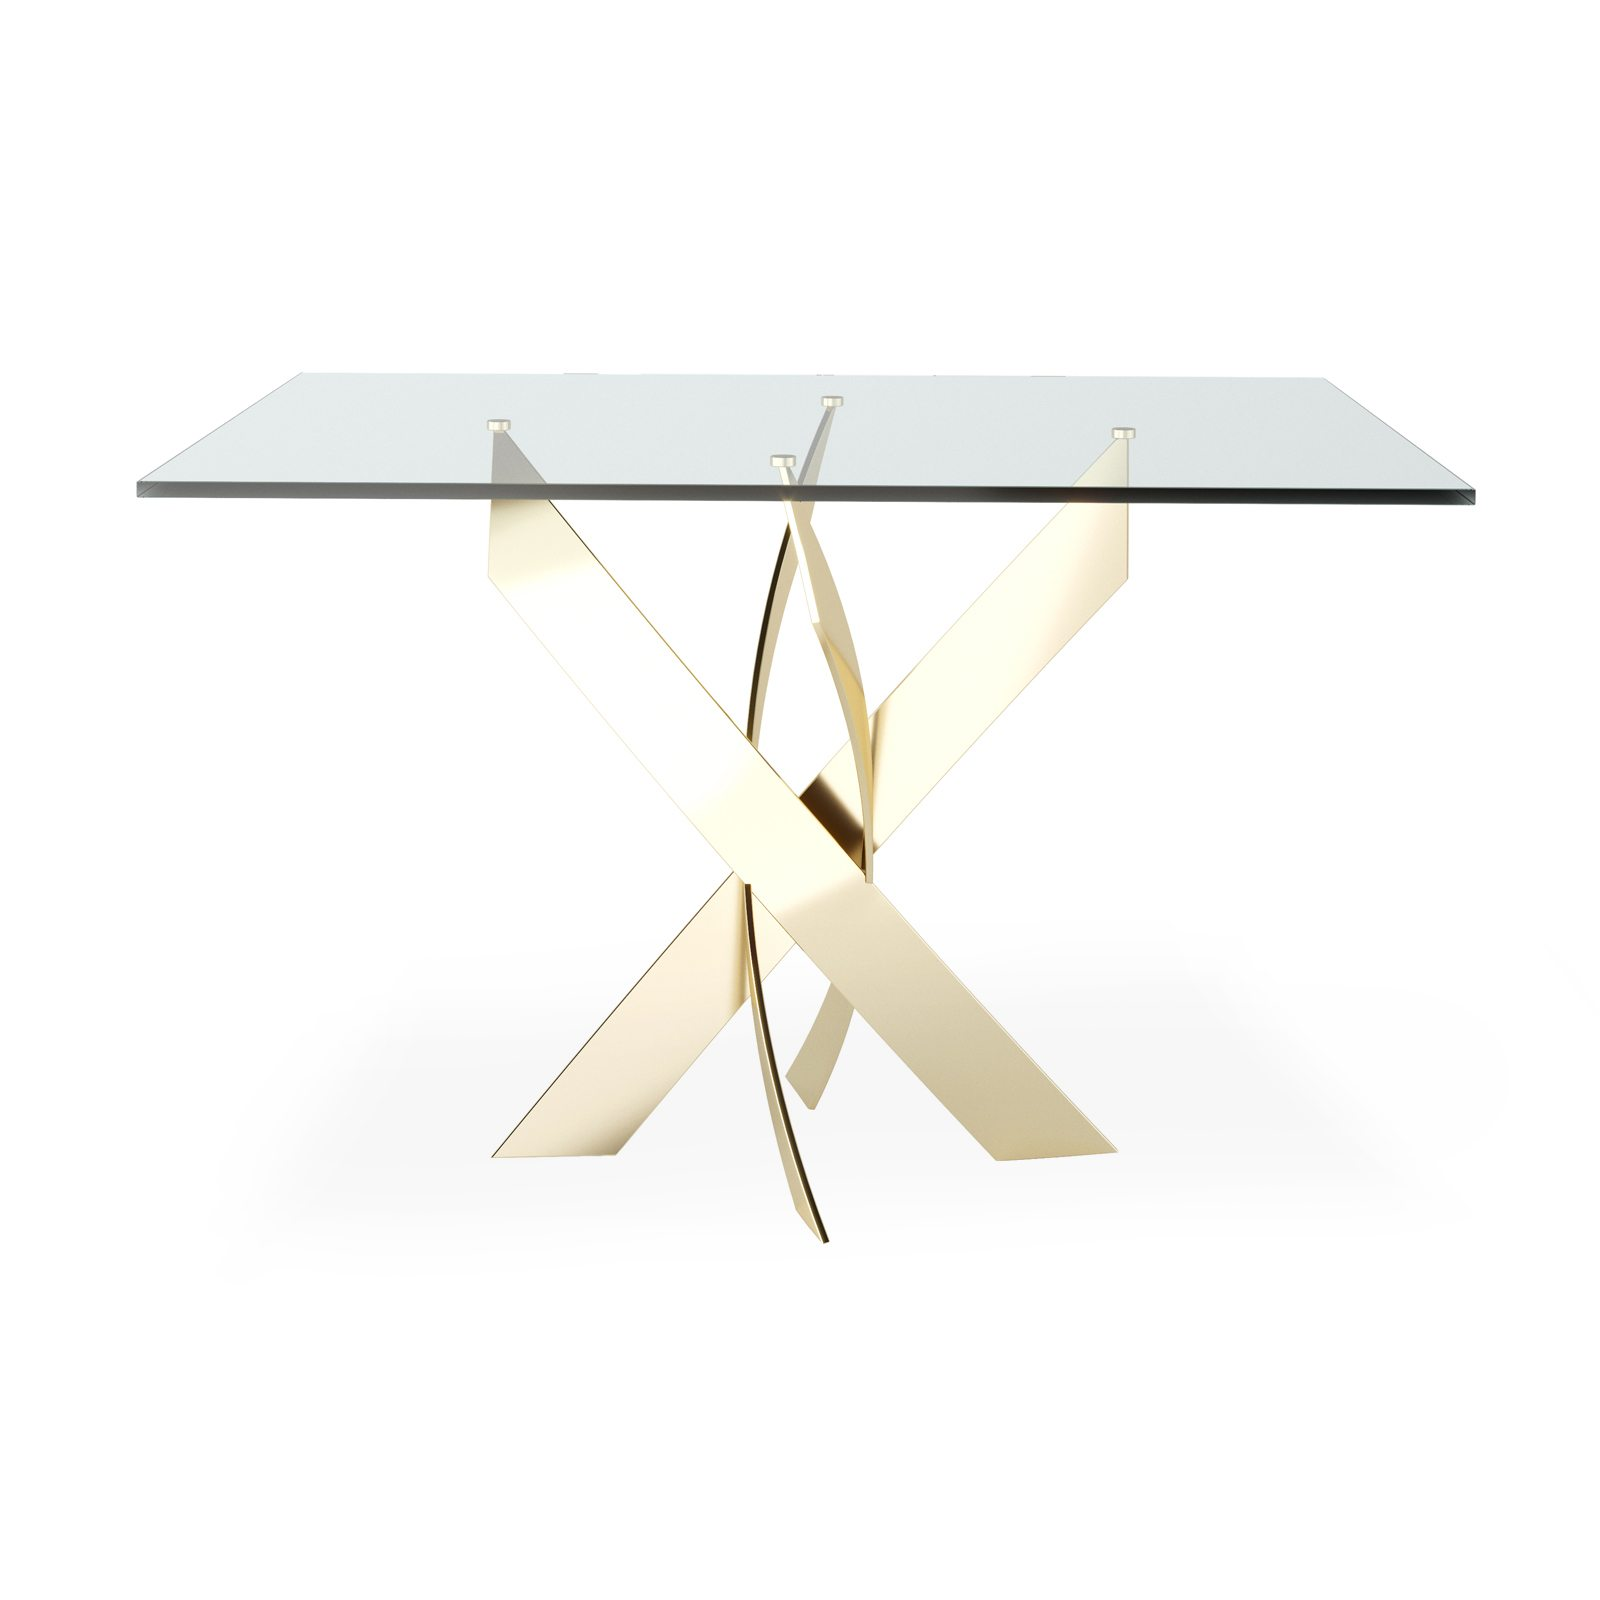 Helix-Dining-Table-Square-Brass-by-Bonham-&-Bonham-01